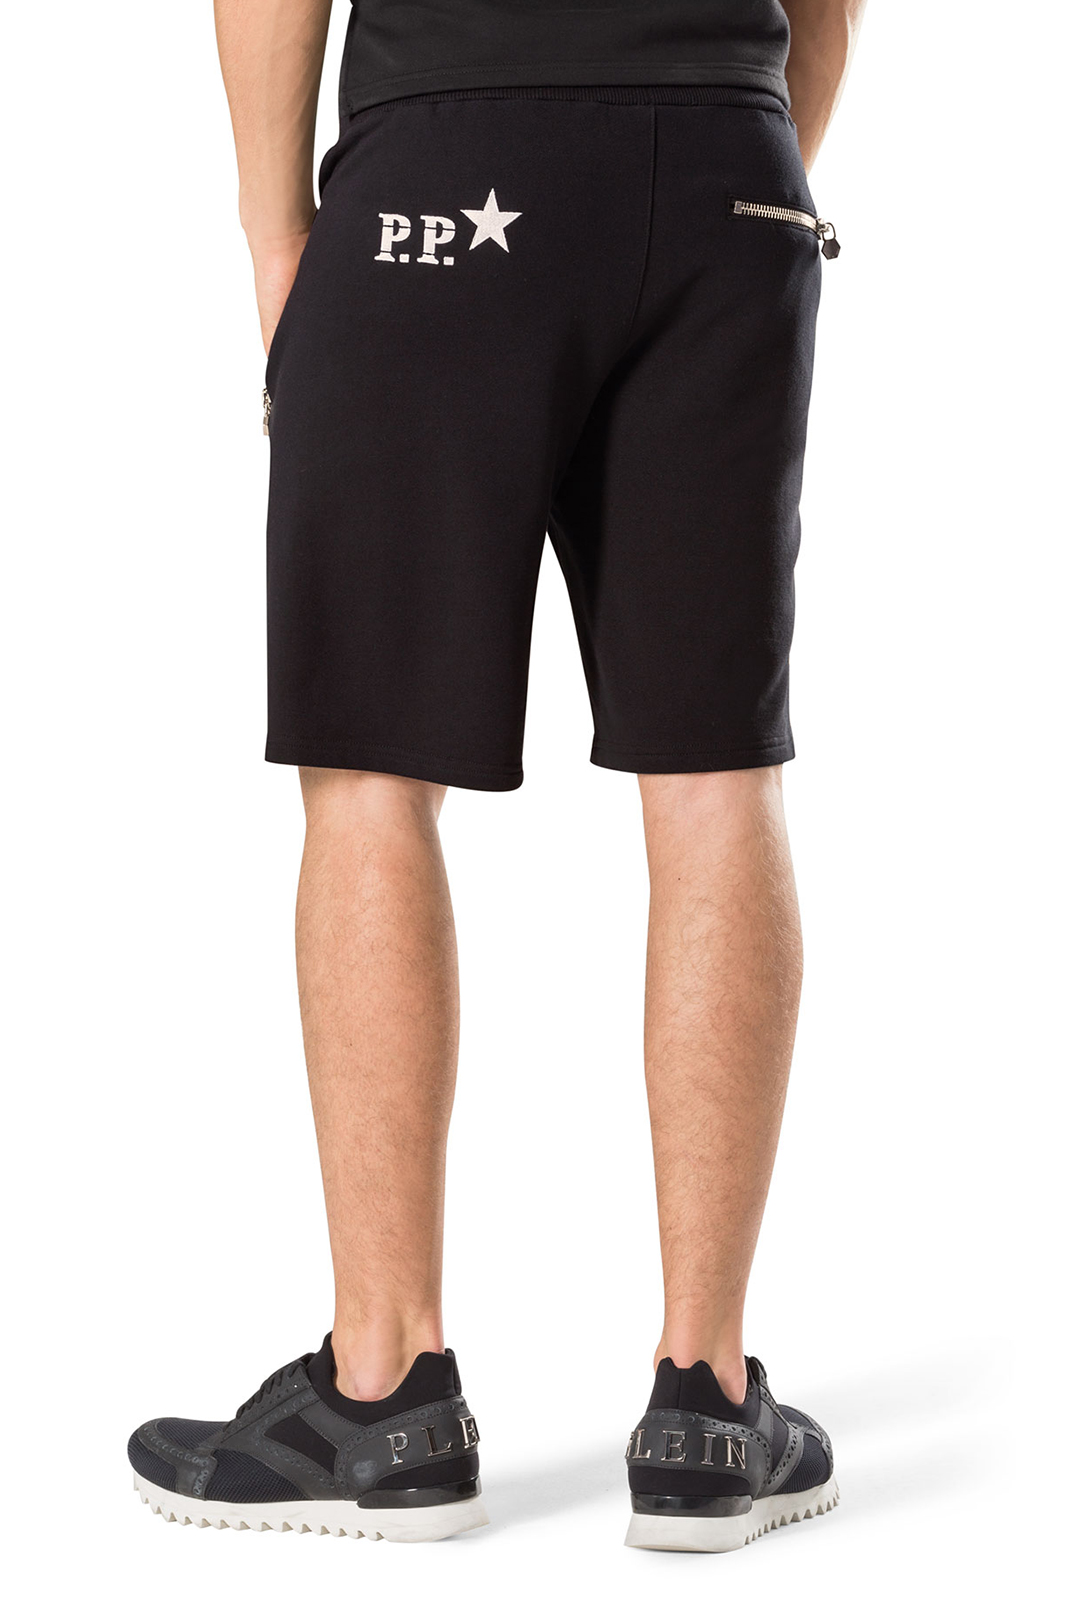 Shorts & Bermudas  Philipp plein MJT0039 NO LIGHT 02 BLACK